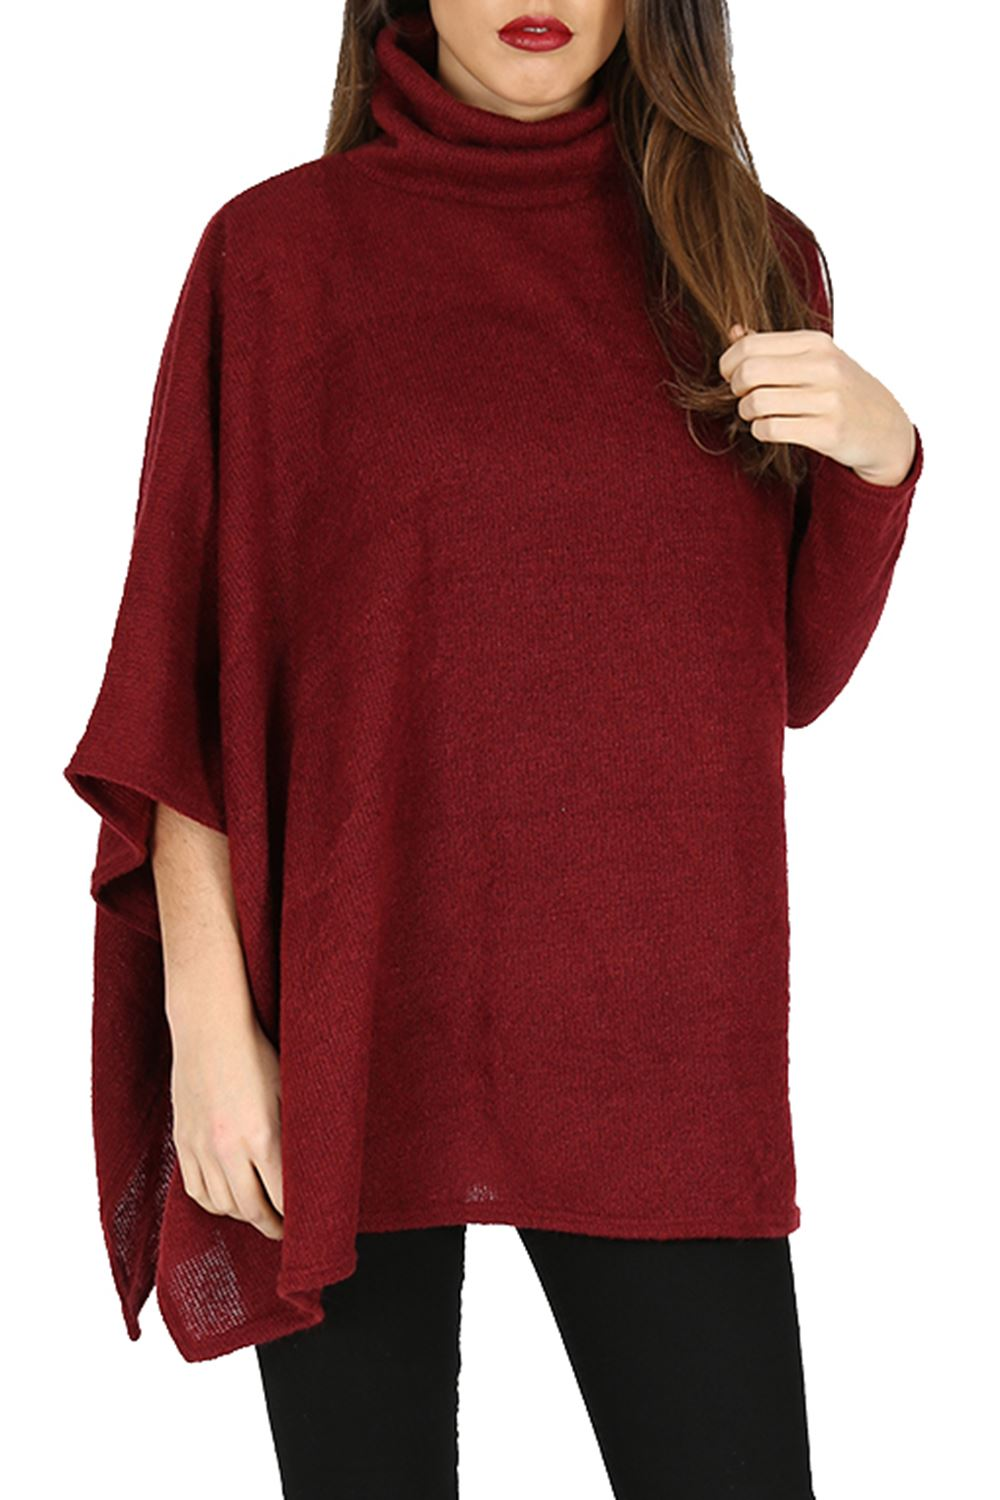 Women'S One Arm Sweater 39